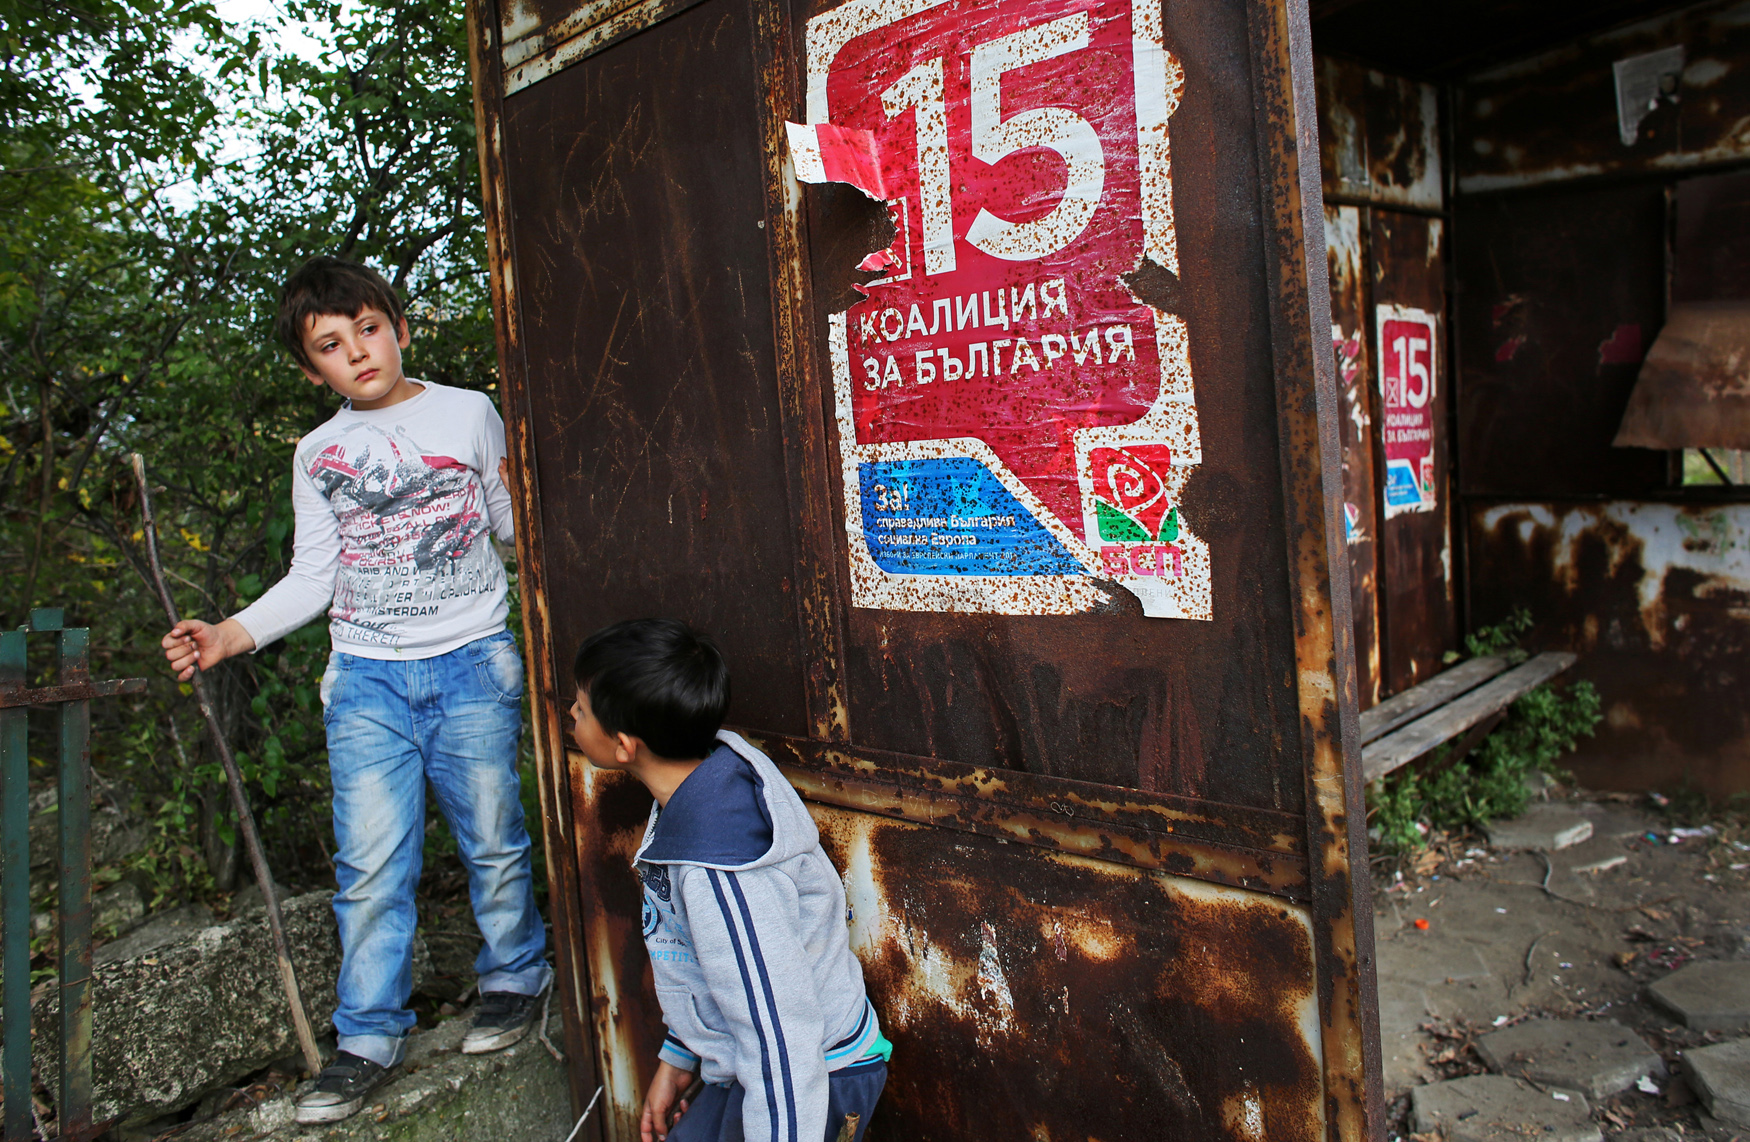 Boys rest under a poster for Bulgaria's Socialist party on a rusty bus stop on October 17th, 2014, in Rabrovo - the only village with a hospital near Kanitz, a nearly abandoned village of 6. Bulgaria has the most extreme population decline in the world — much due to post-1989 emigration, high death rates and low birth rates. There are so few people of child-bearing age in the nation that population statistics project a 30-percent decrease by 2060, from 7.2 million to just over 5 million. In other words, Bulgaria's population declines by 164 people a day, or 60,000 people a year — 60 percent of them aged over 65.